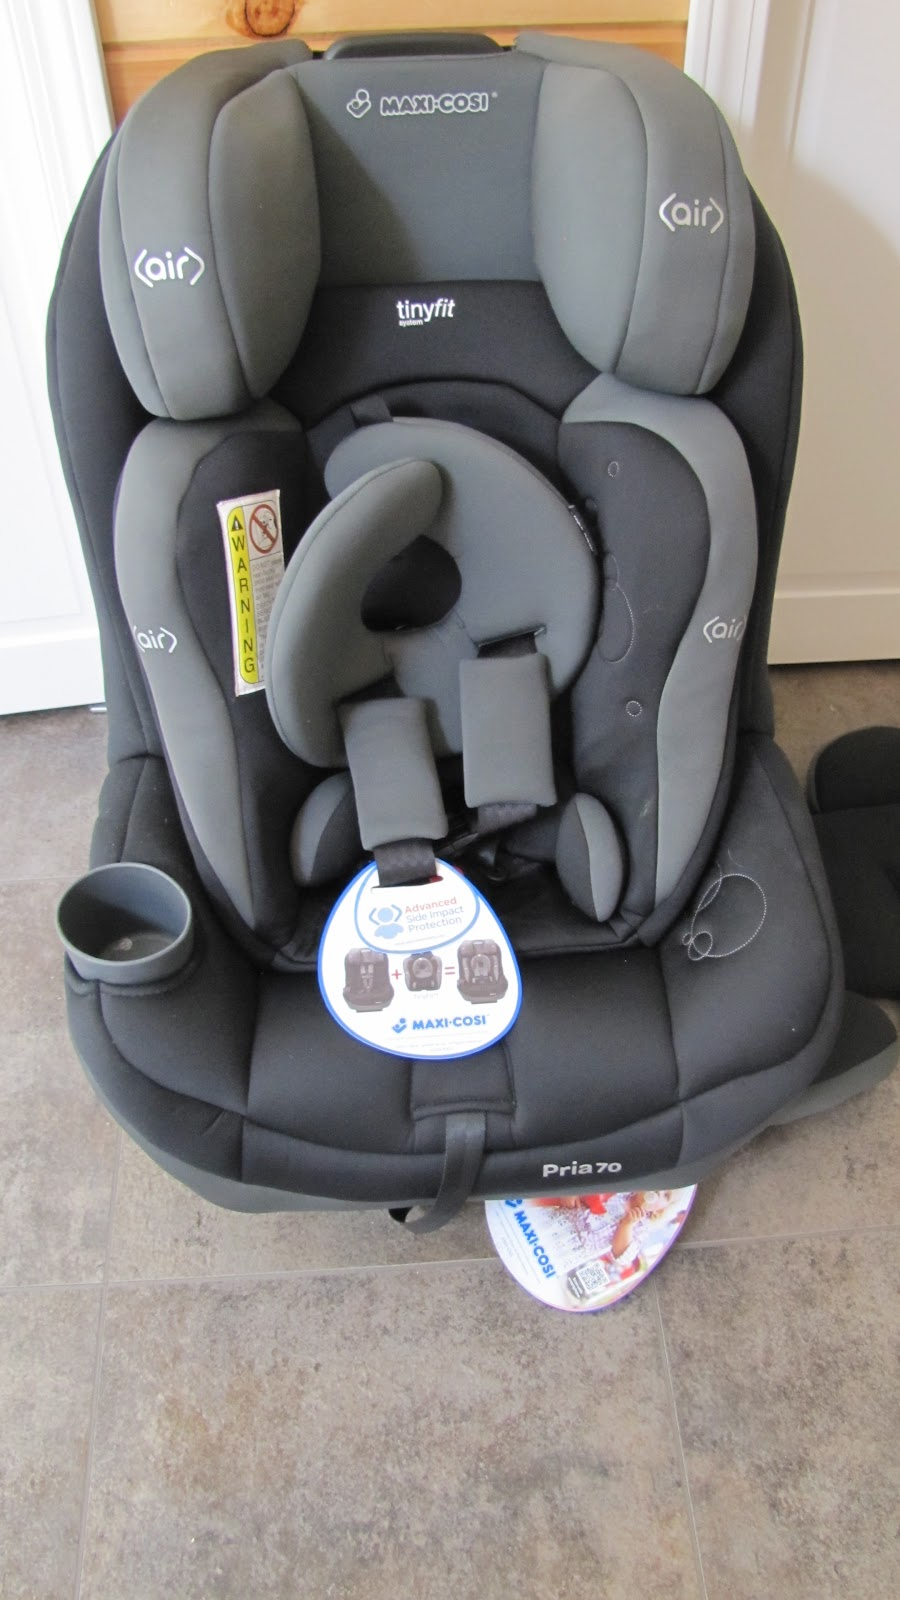 Maxi Cosi Pria 85 Review >> Maxi-Cosi Pria 70 Convertible Car Seat Featuring the TinyFit System Review & Giveaway